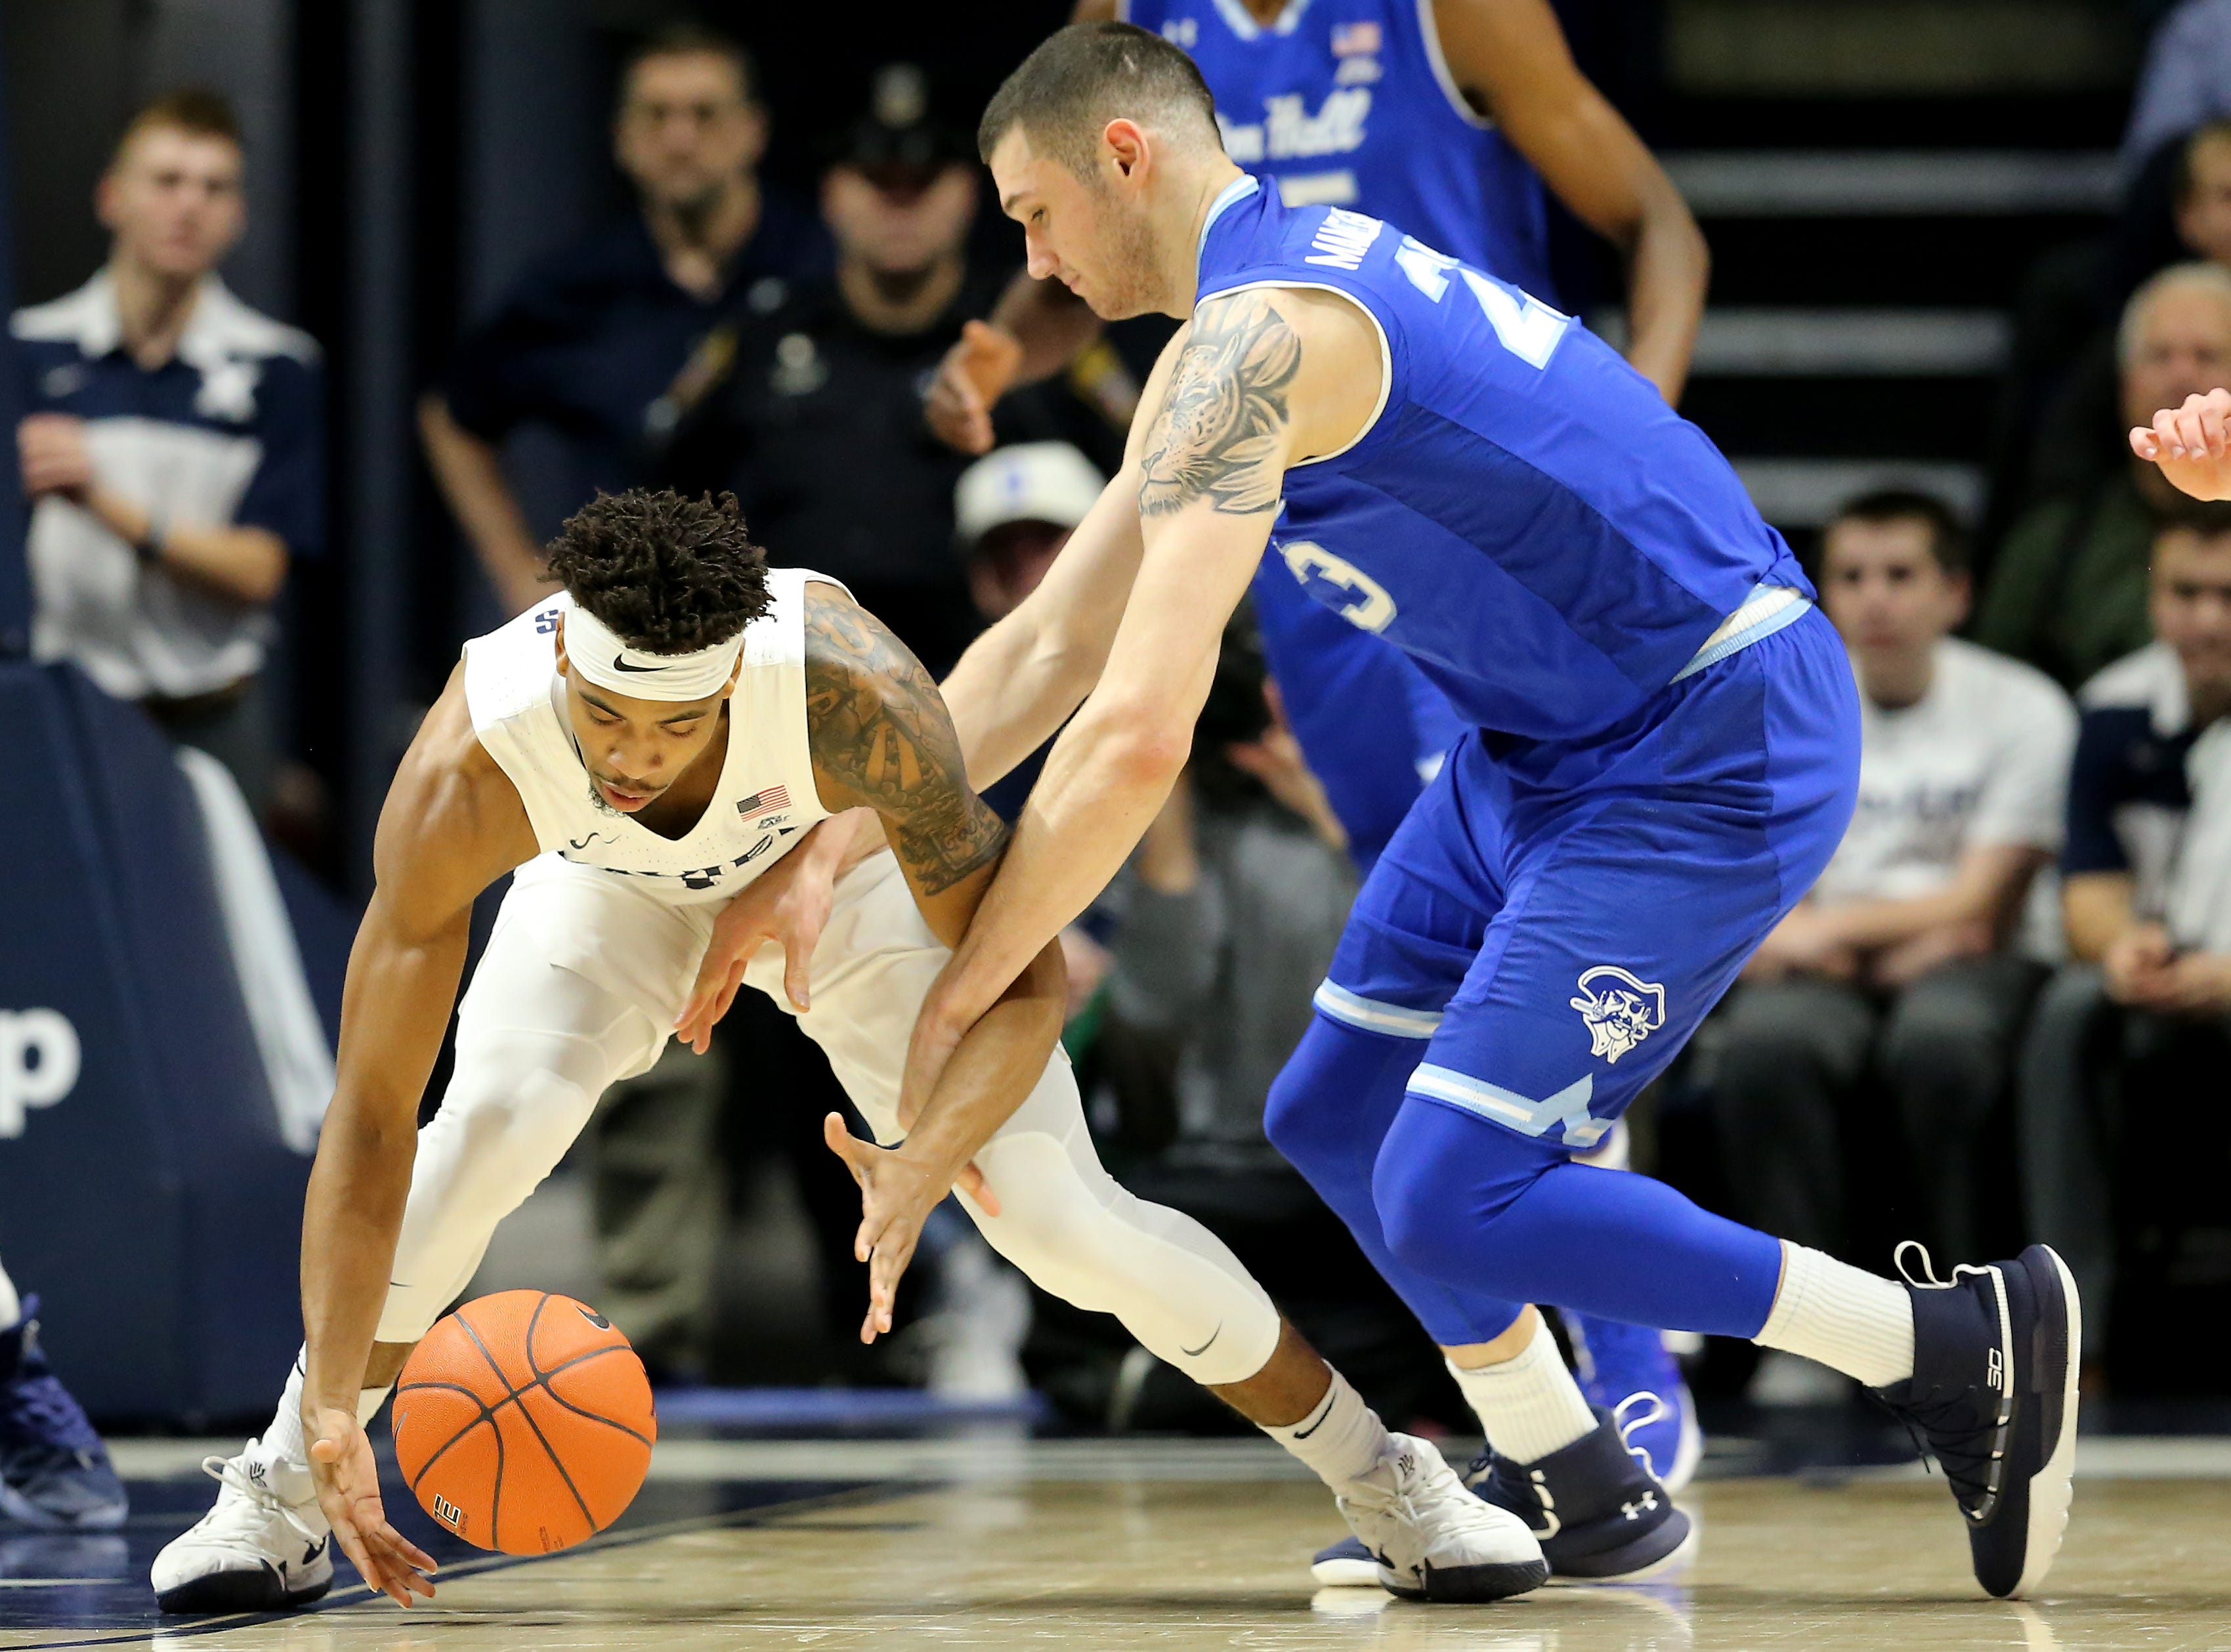 Xavier Musketeers guard Paul Scruggs (1) picks up a loose ball in the first half of an NCAA college basketball game against the Seton Hall Pirates, Wednesday, Jan. 2, 2019, at the Cintas Center in Cincinnati.